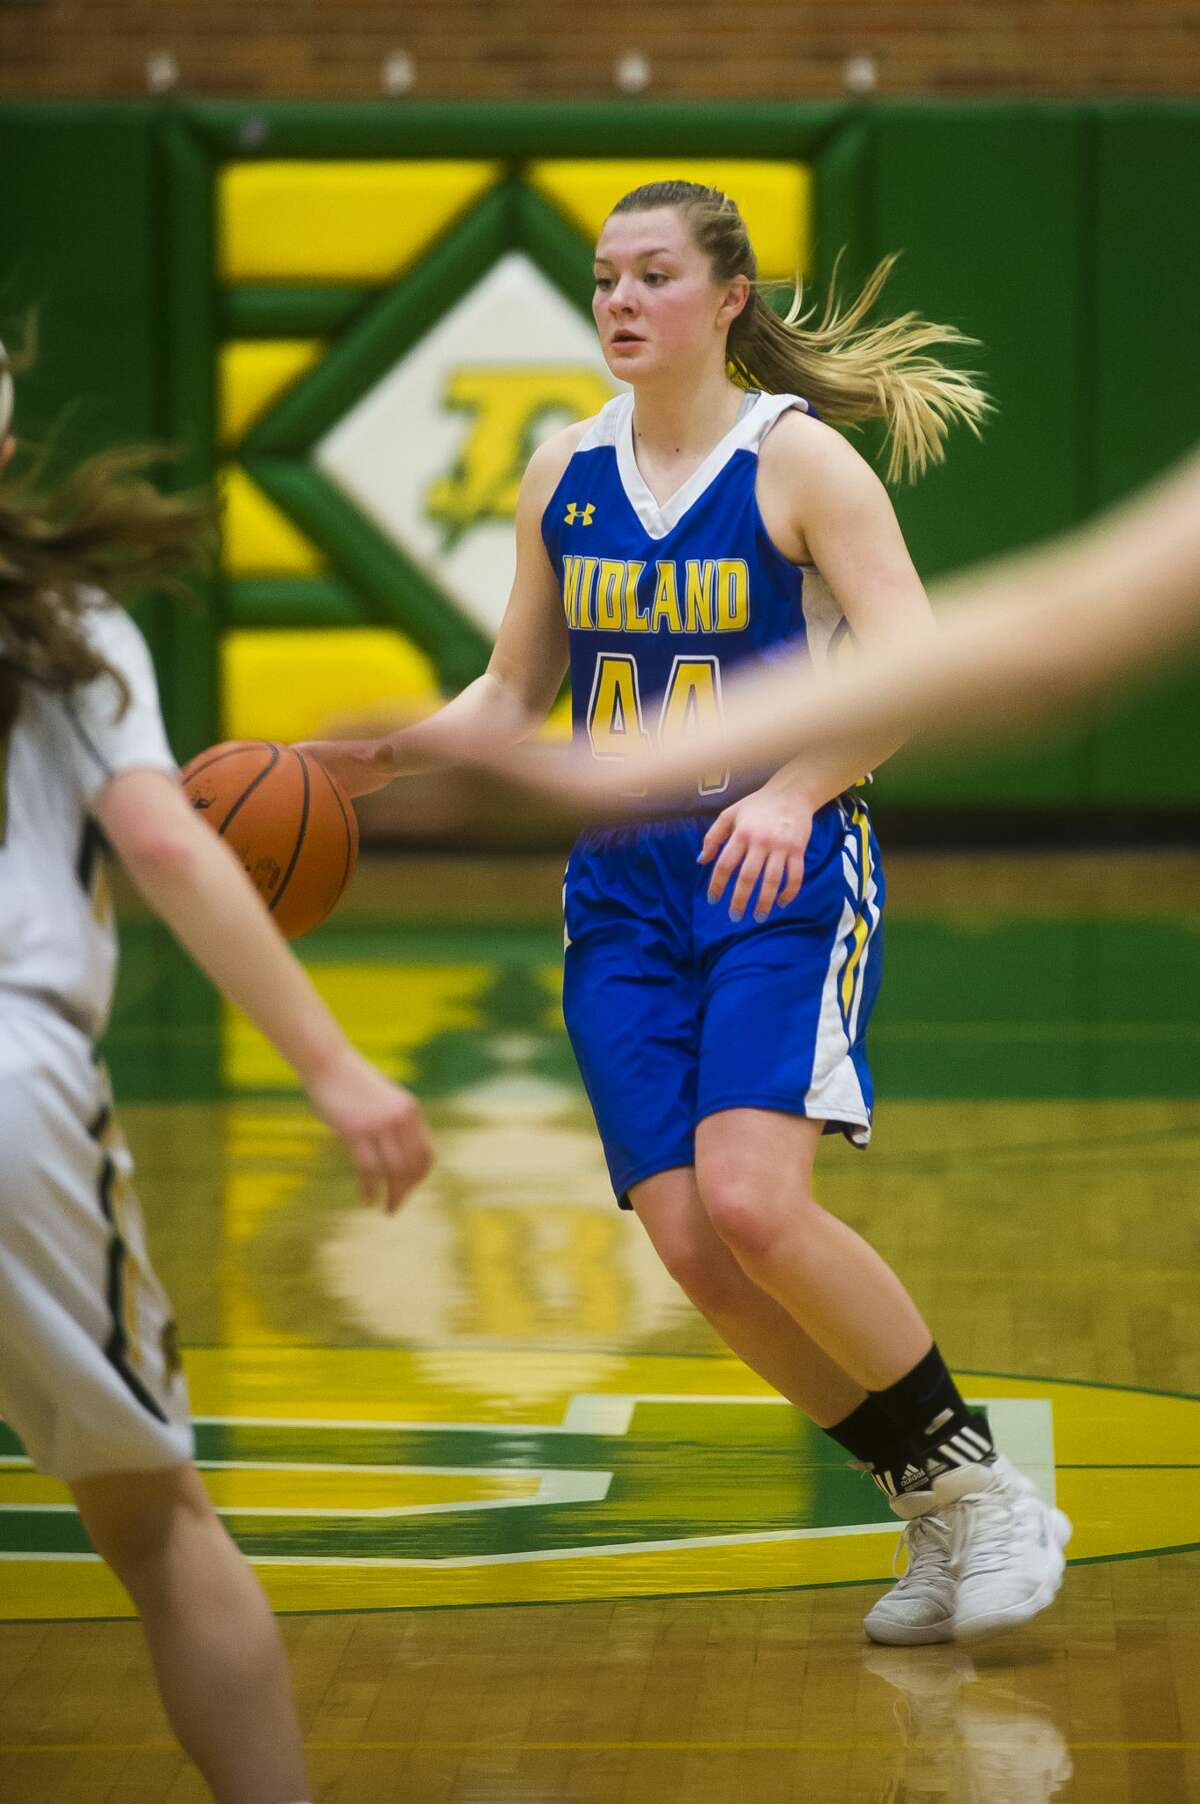 Midland senior Maddie Barrie dribbles down the court during the Chemics' game against Dow on Friday, Feb. 9, 2018 at H. H. Dow High School. (Katy Kildee/kkildee@mdn.net)